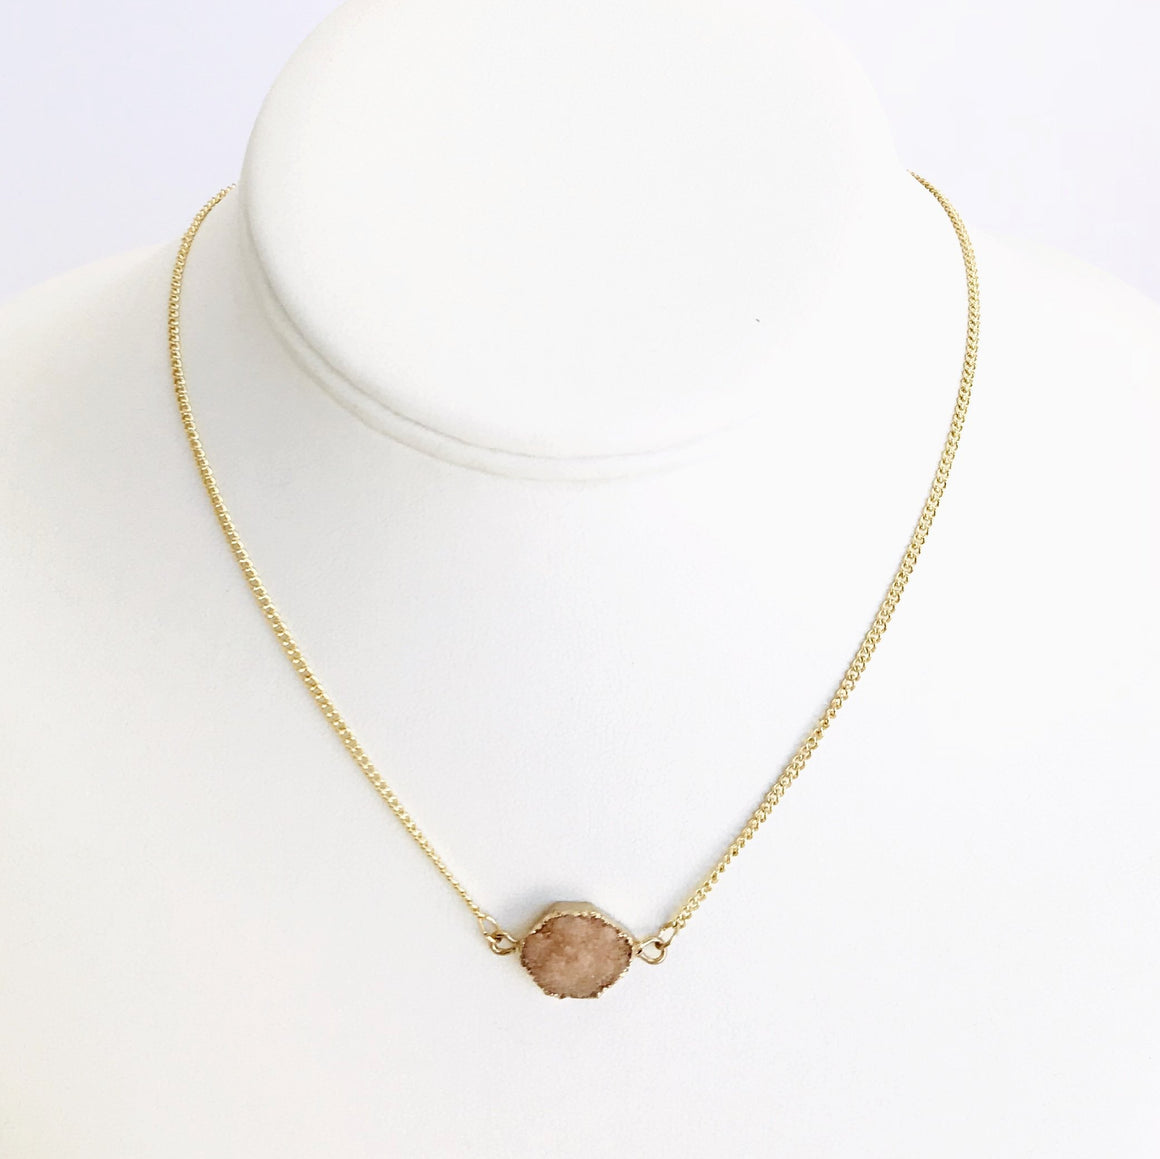 Blushing Over You Gold Necklace